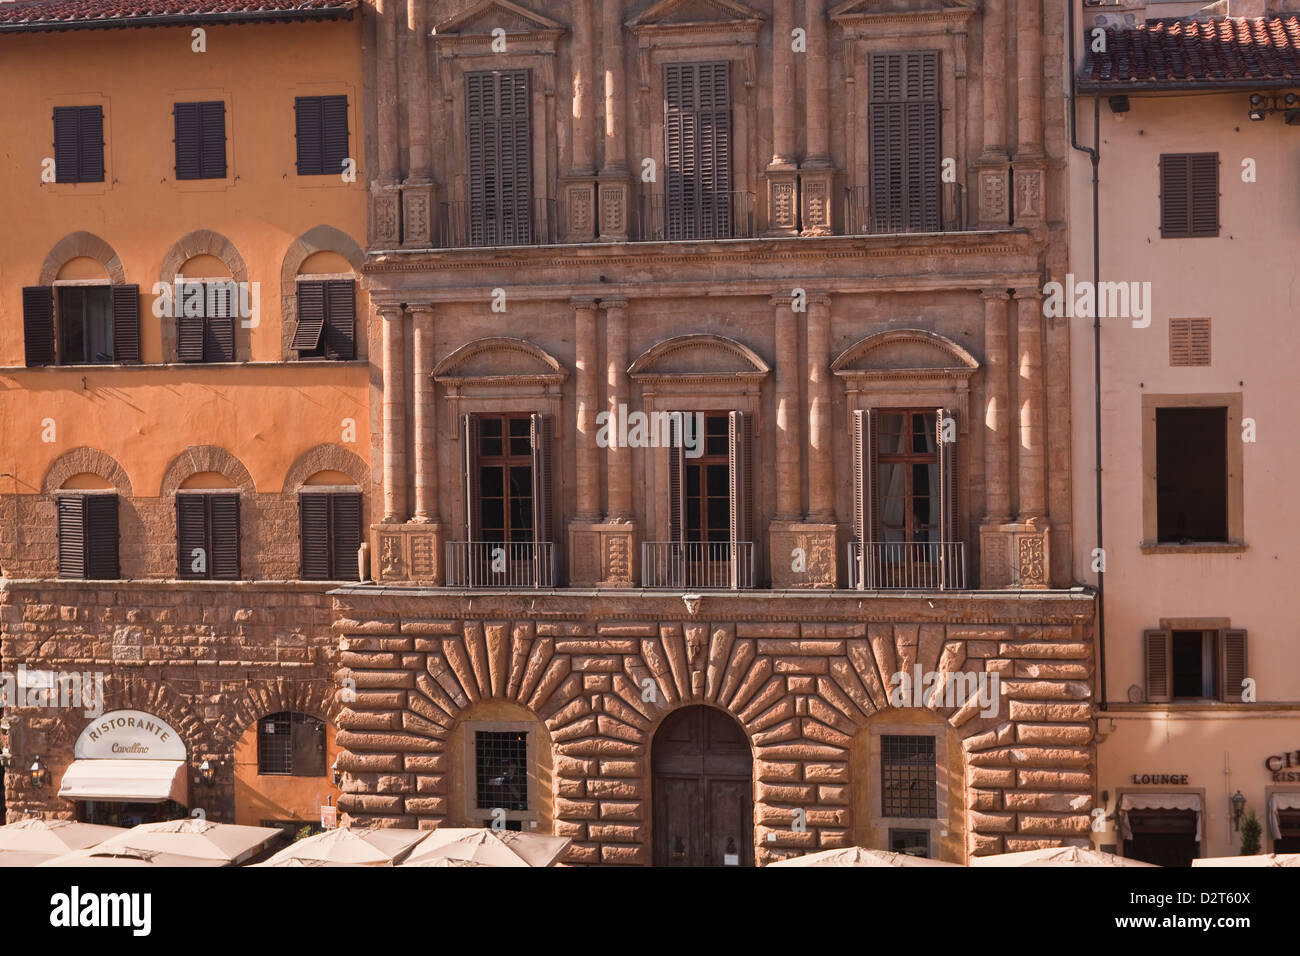 Typical building facades in Piazza della Signoria, Florence, Tuscany, Italy, Europe - Stock Image